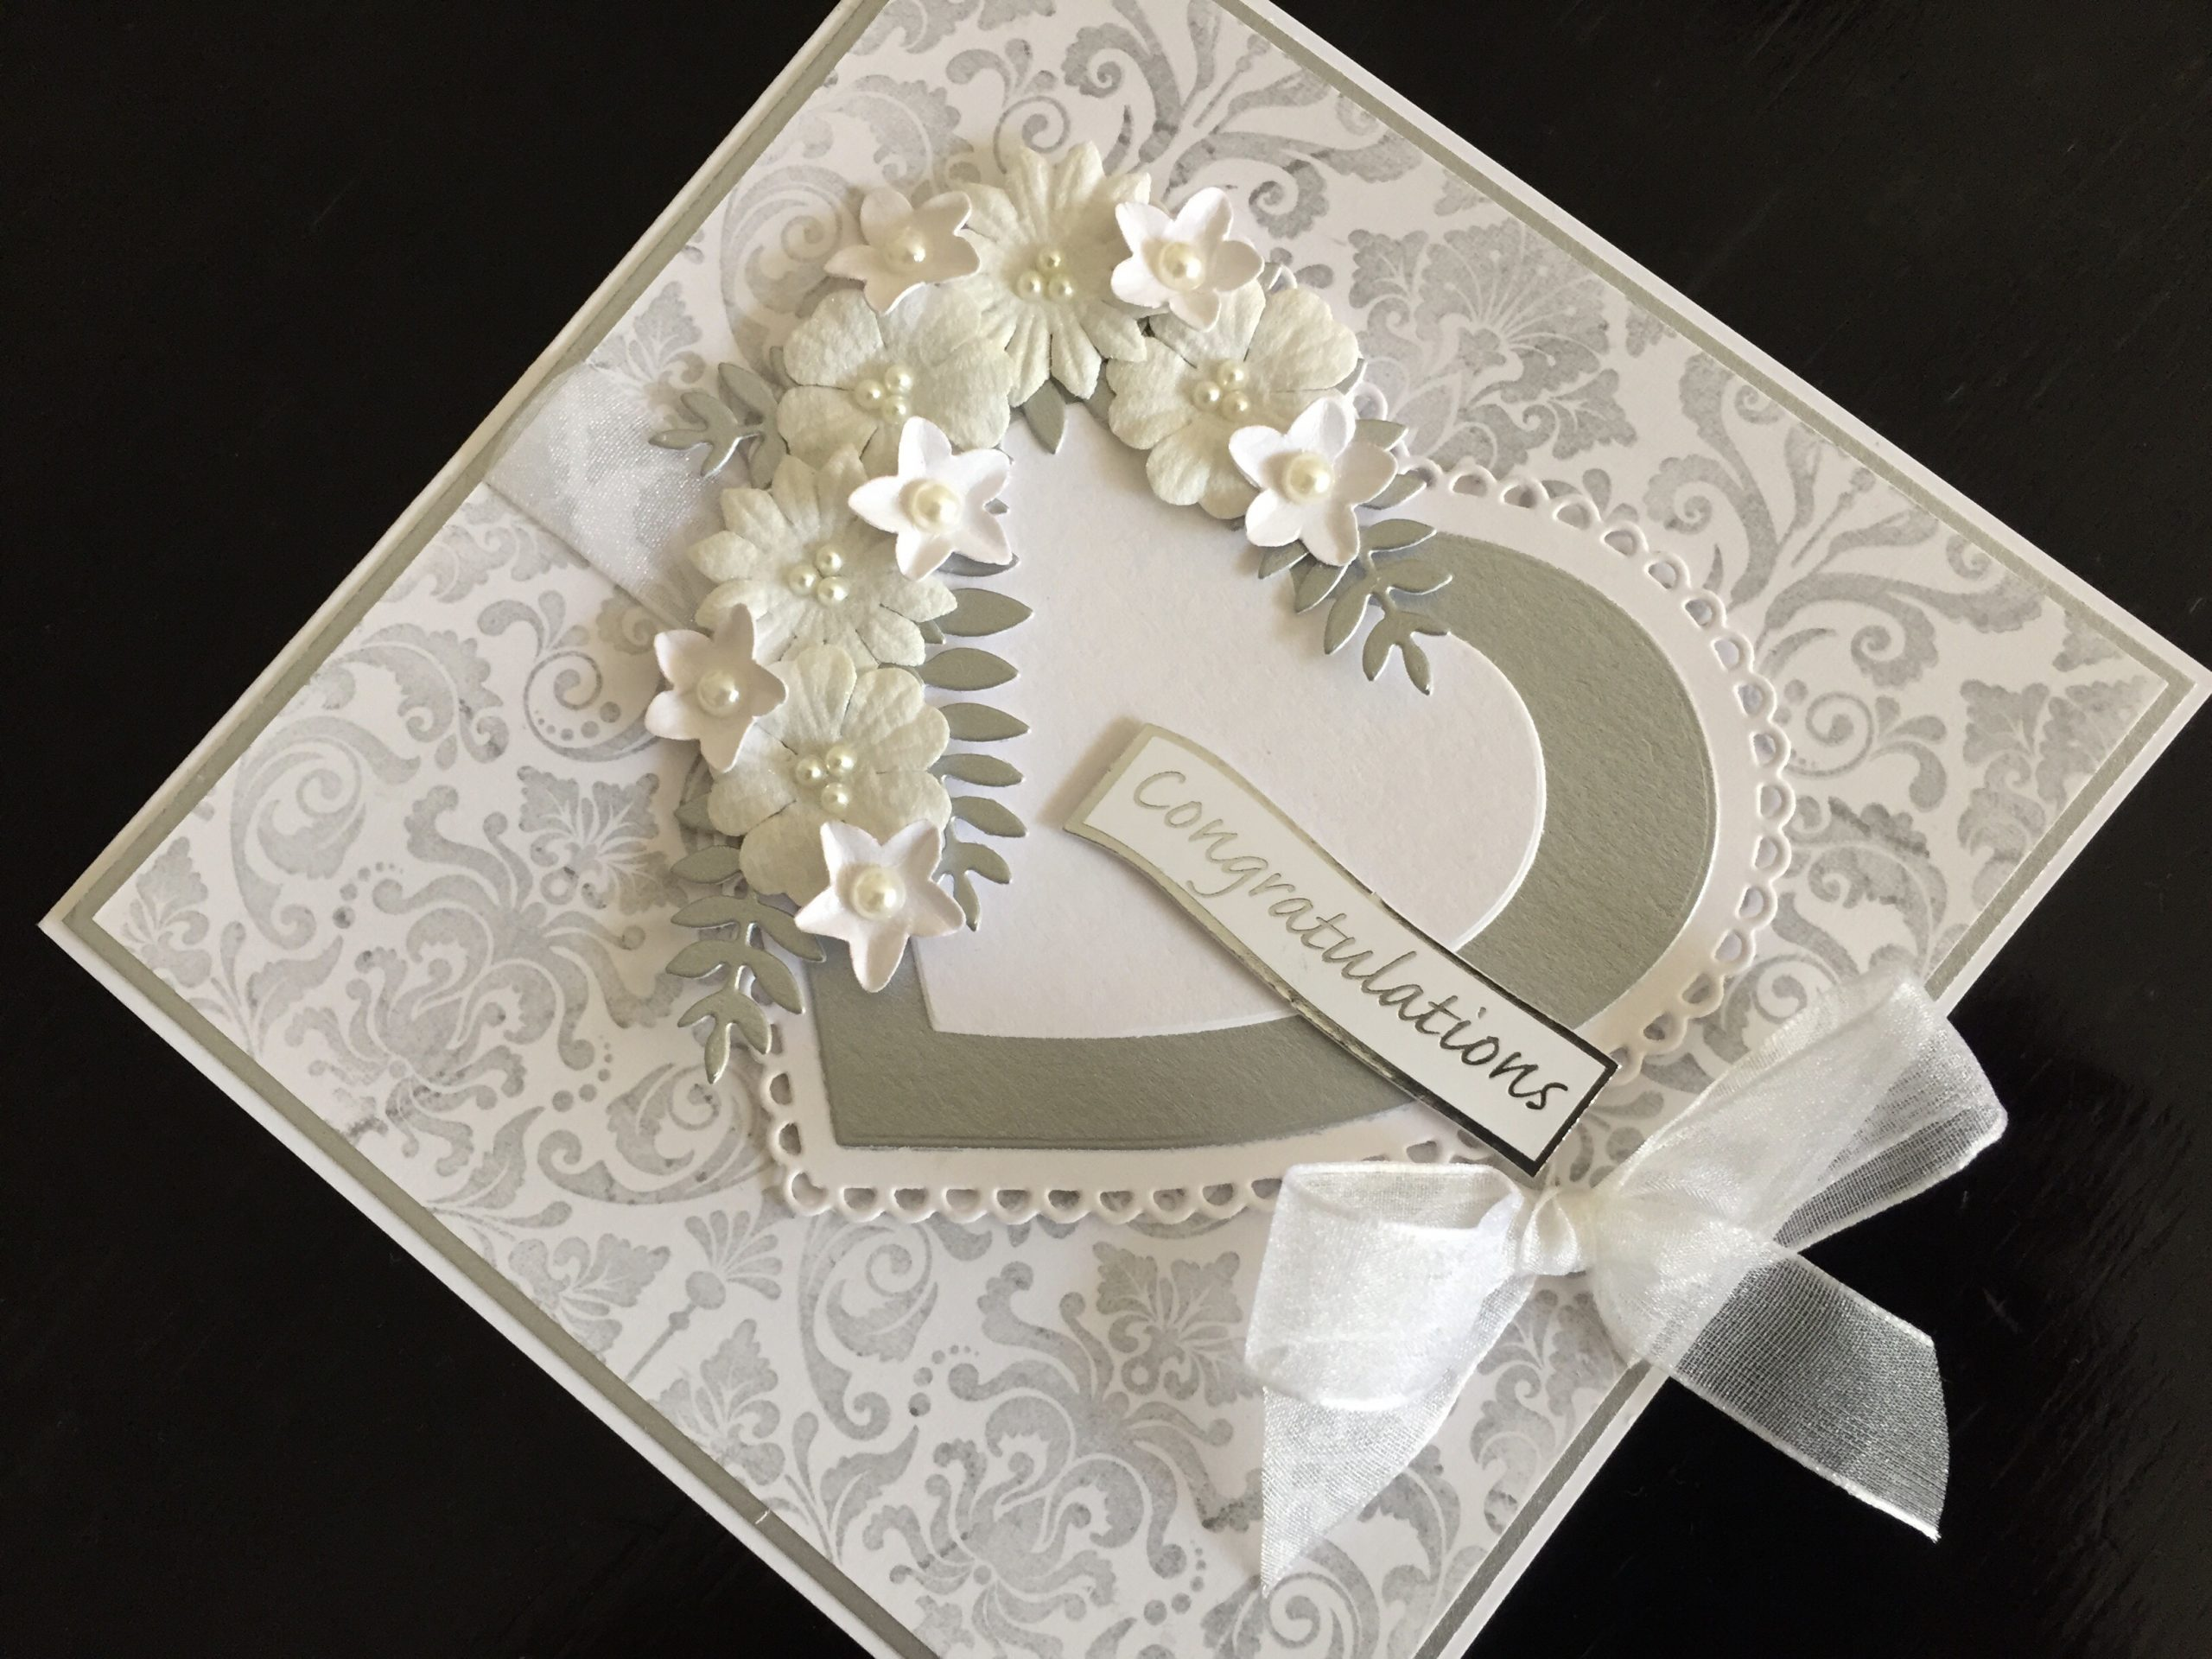 Silver and white wedding card with hearts and flowers